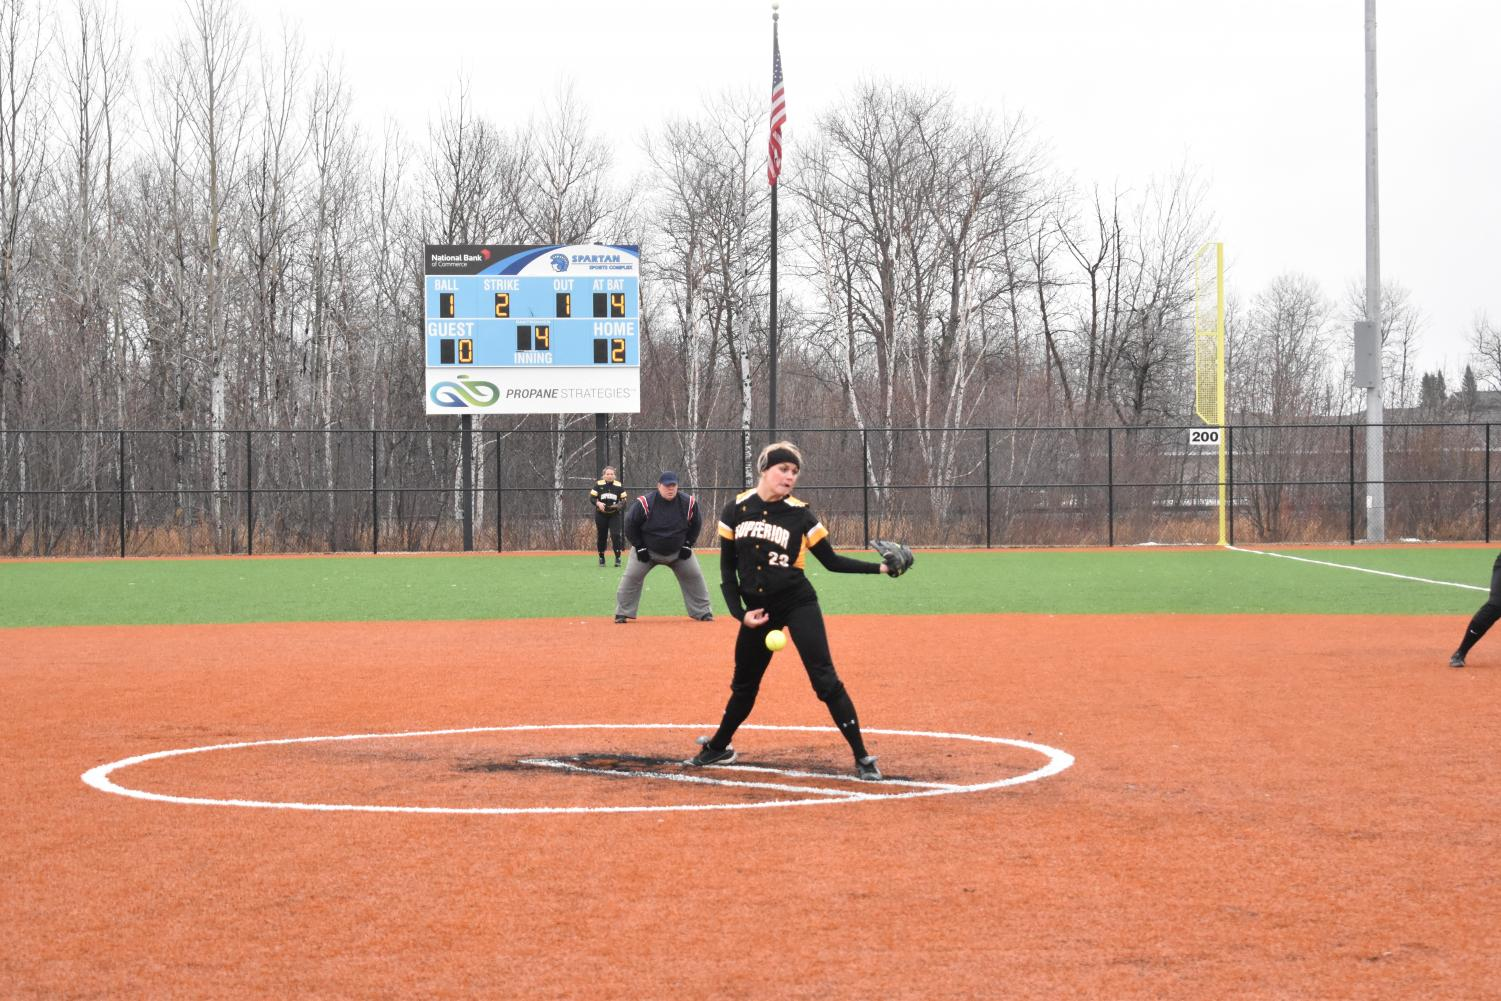 The UWS womens' softball team pitching during a game on the Spartan softball fields.